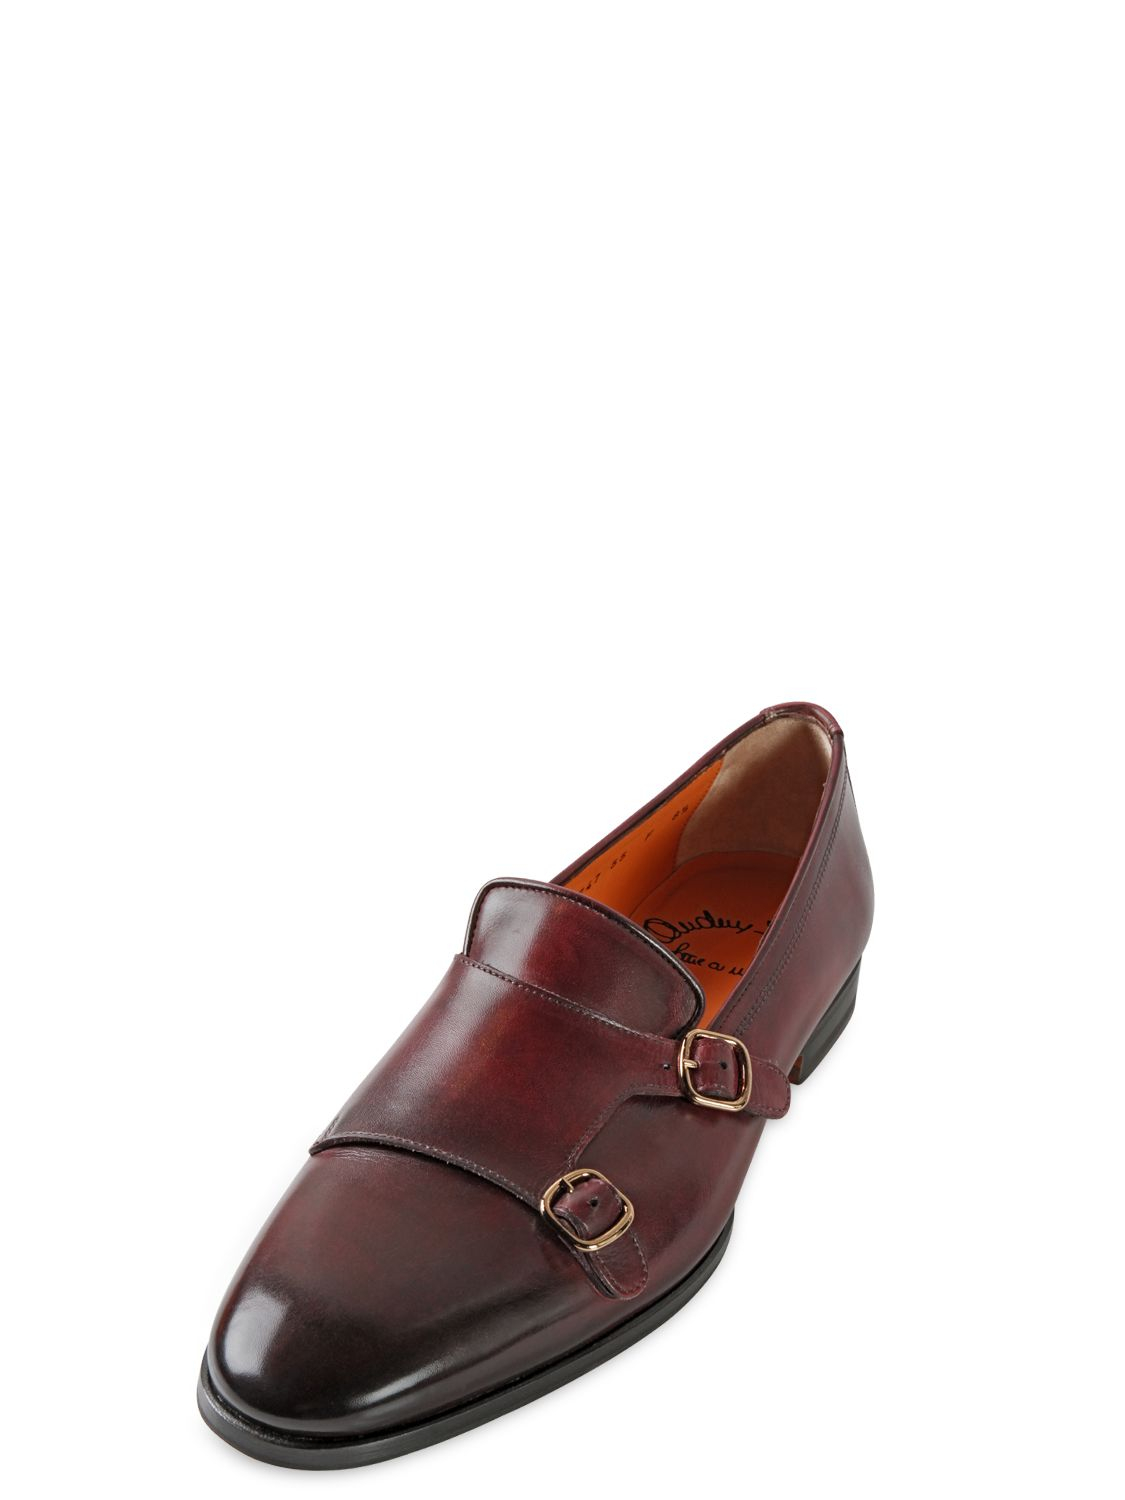 Santoni Hand Painted Leather Monk Strap Loafers In